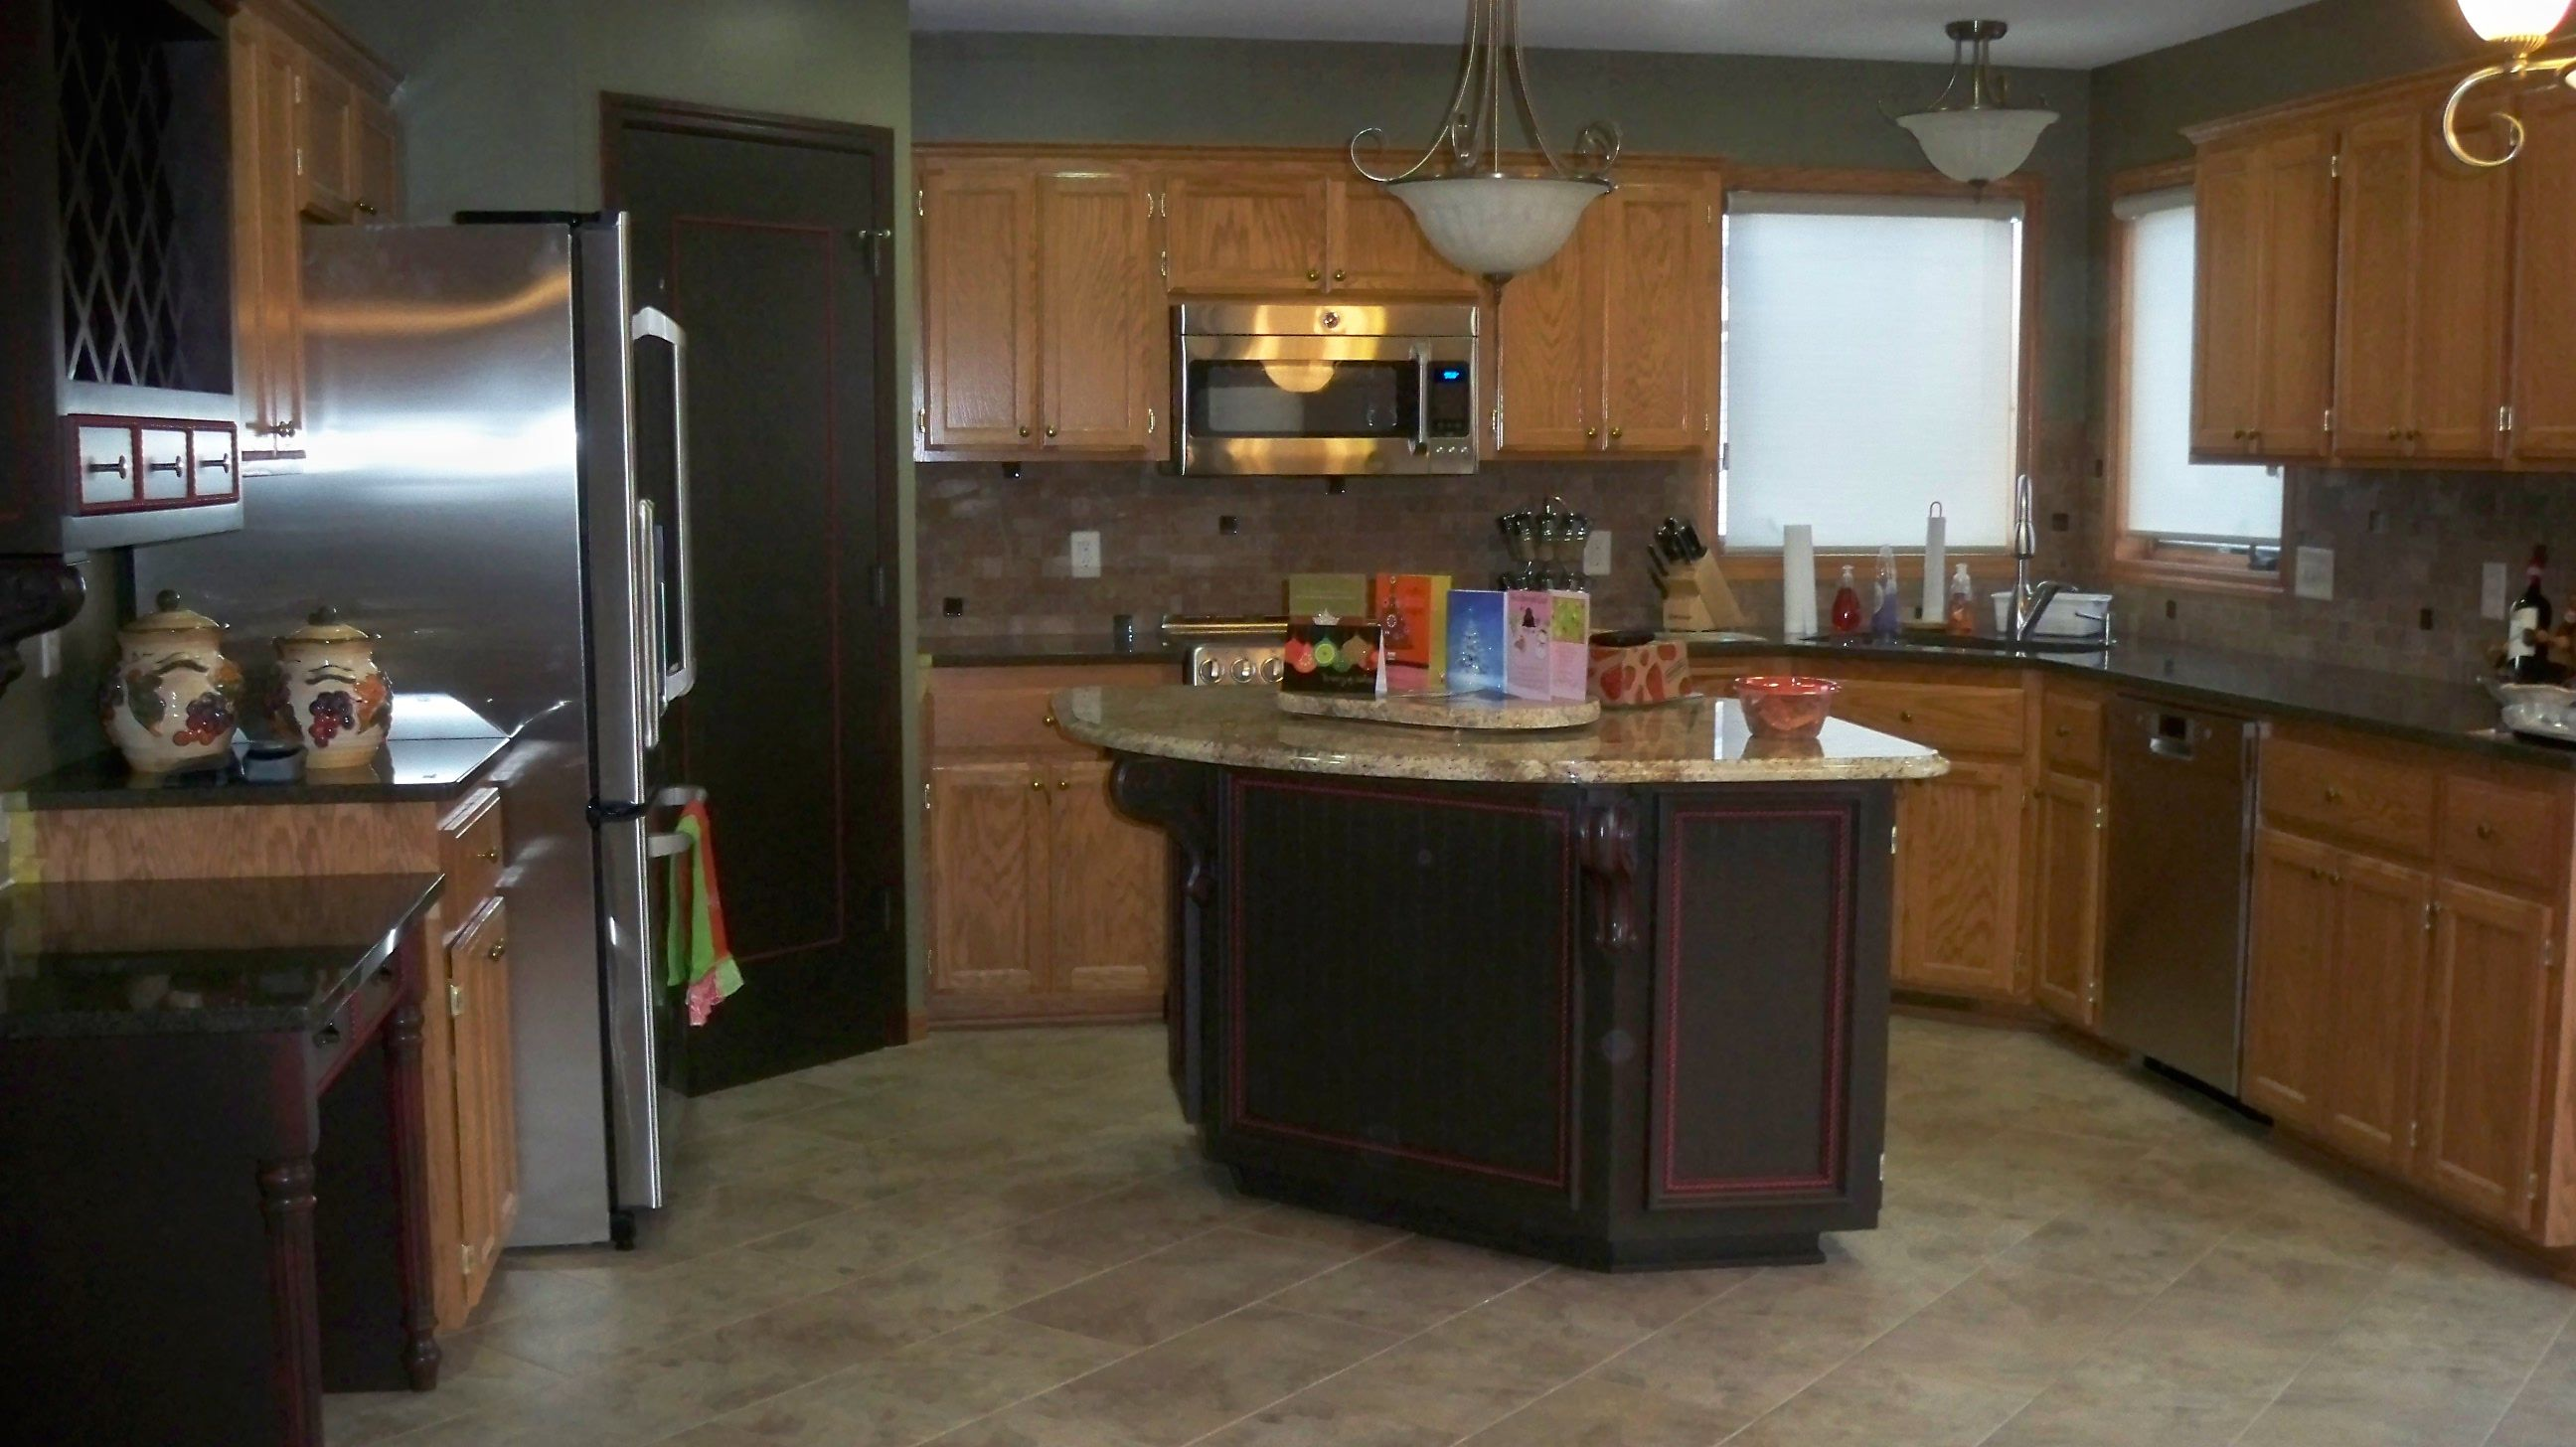 Wall Painting For Kitchen Painting Kitchen With Golden Oak Cabinets House Decor